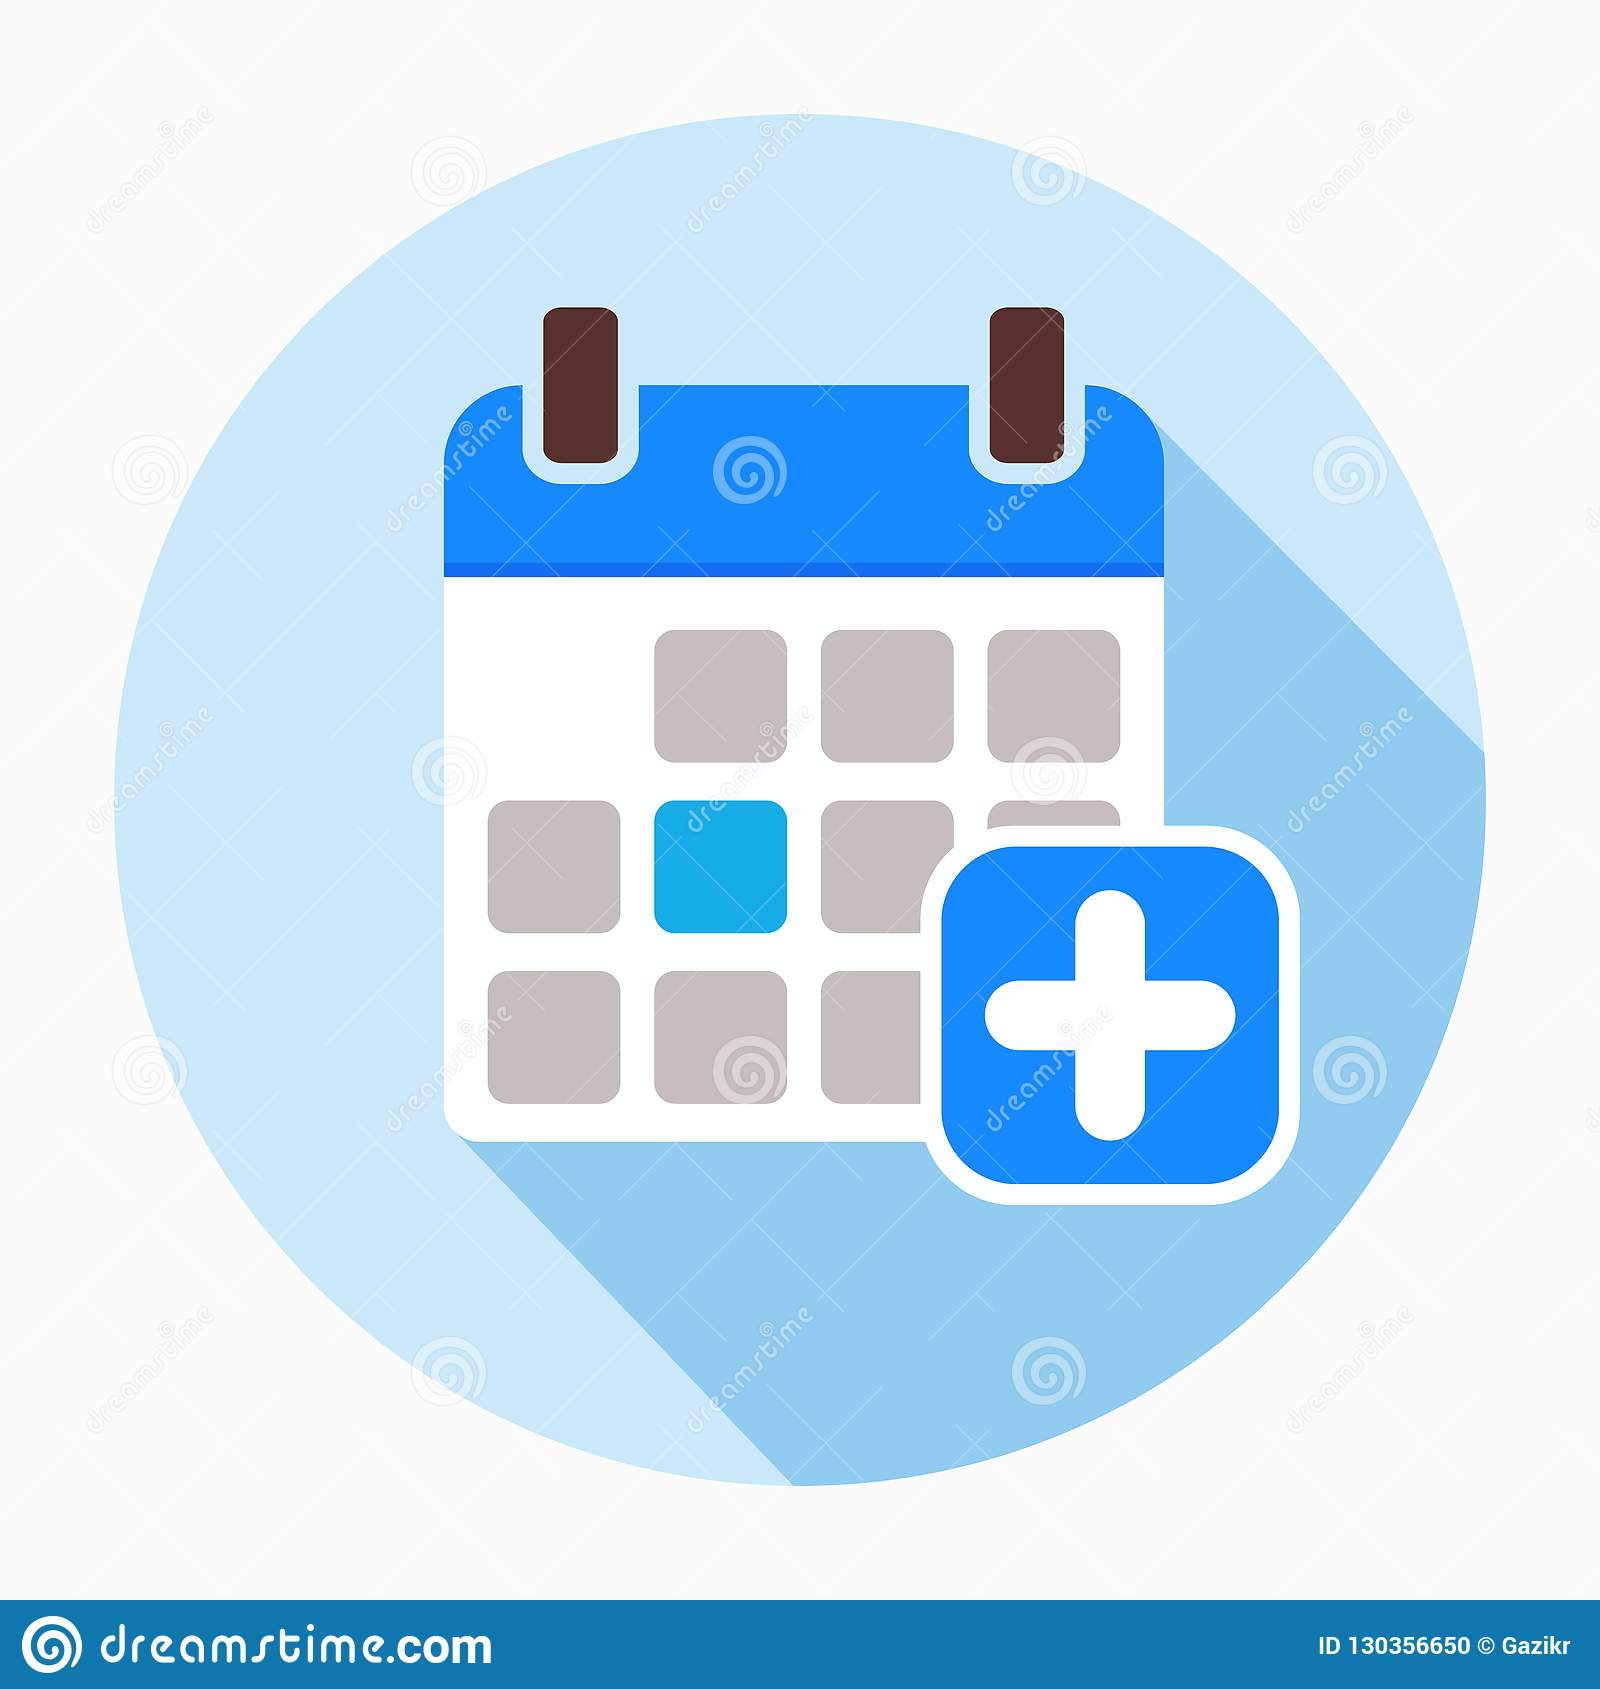 Add Calendar Icon Vector, Filled Flat Sign. Stock Vector for Google Calendar Add Image